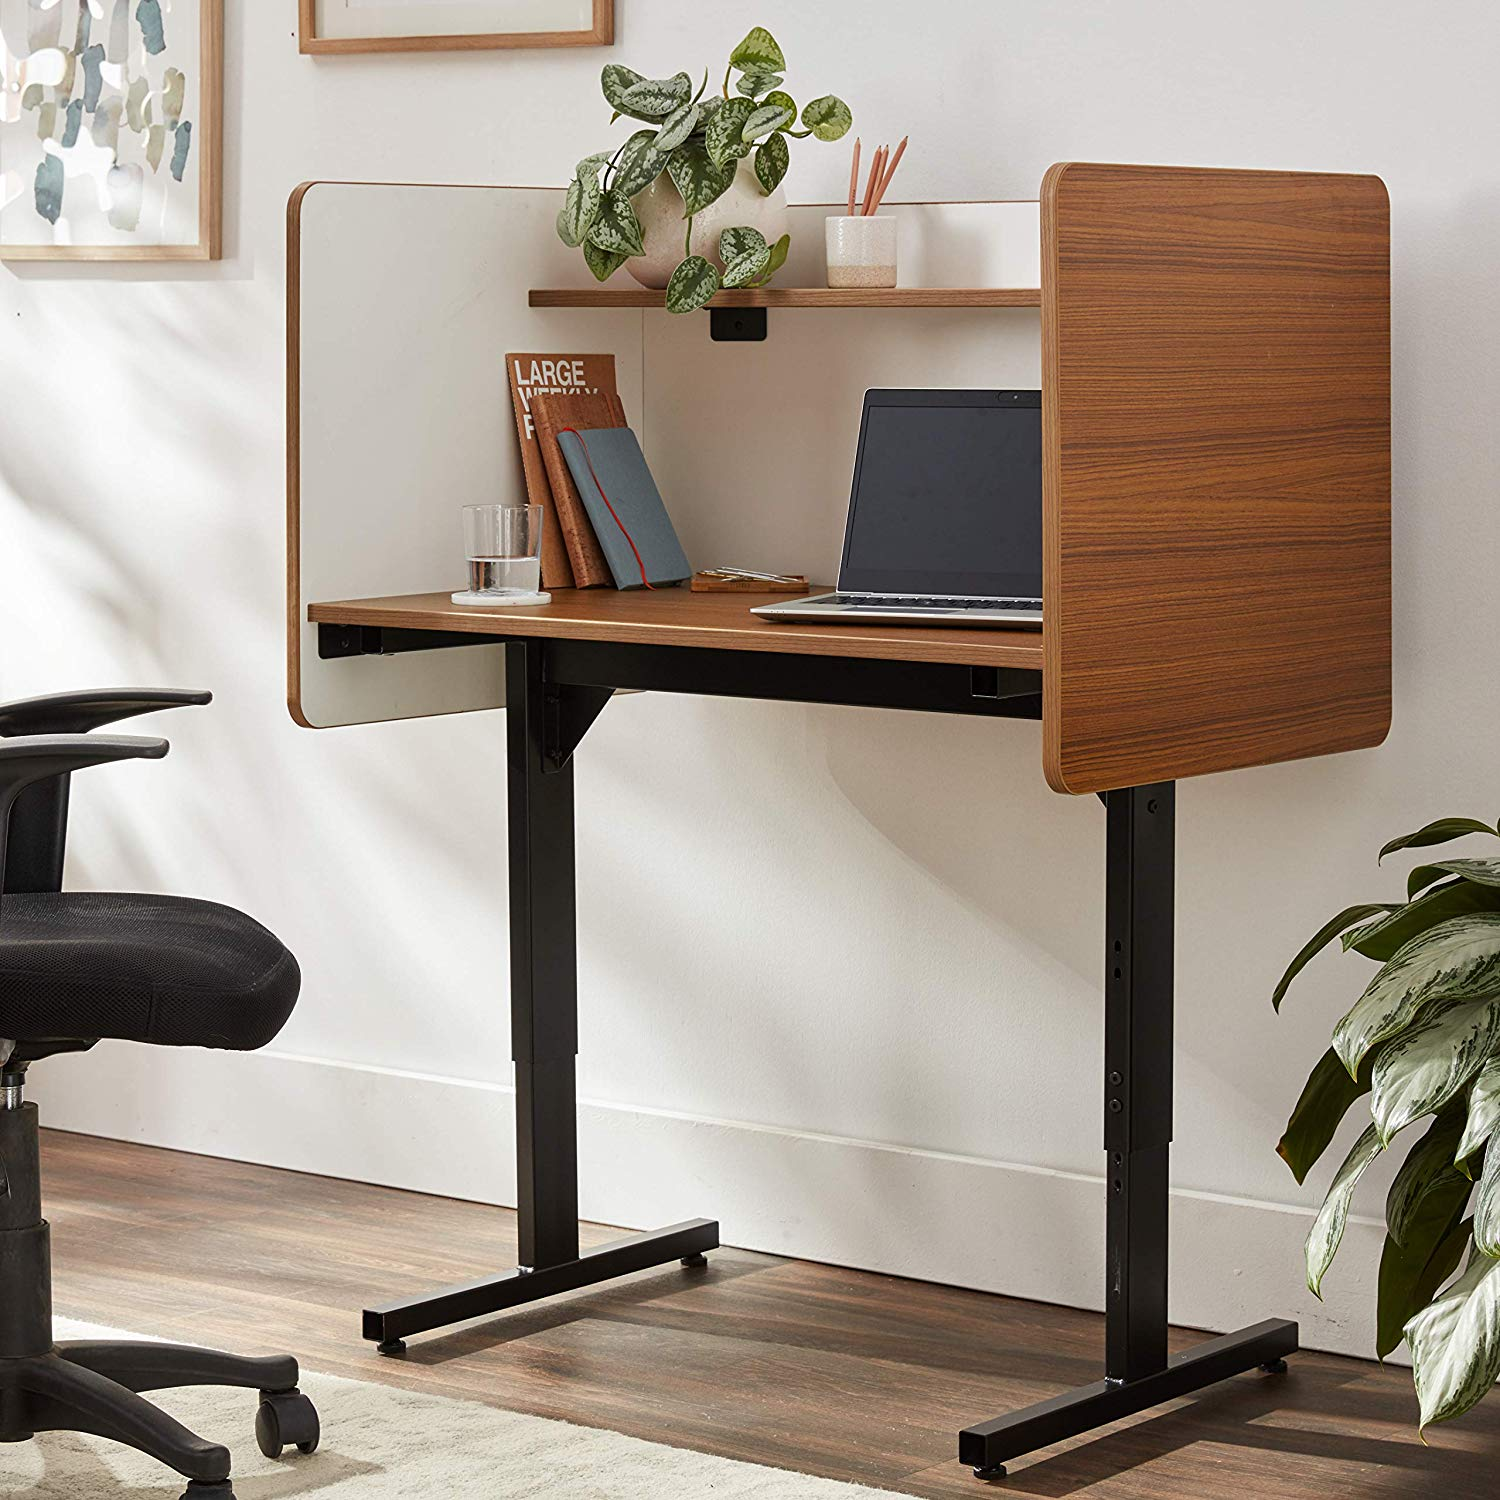 Balt 89788 Adjustable Study Carrel Workstation